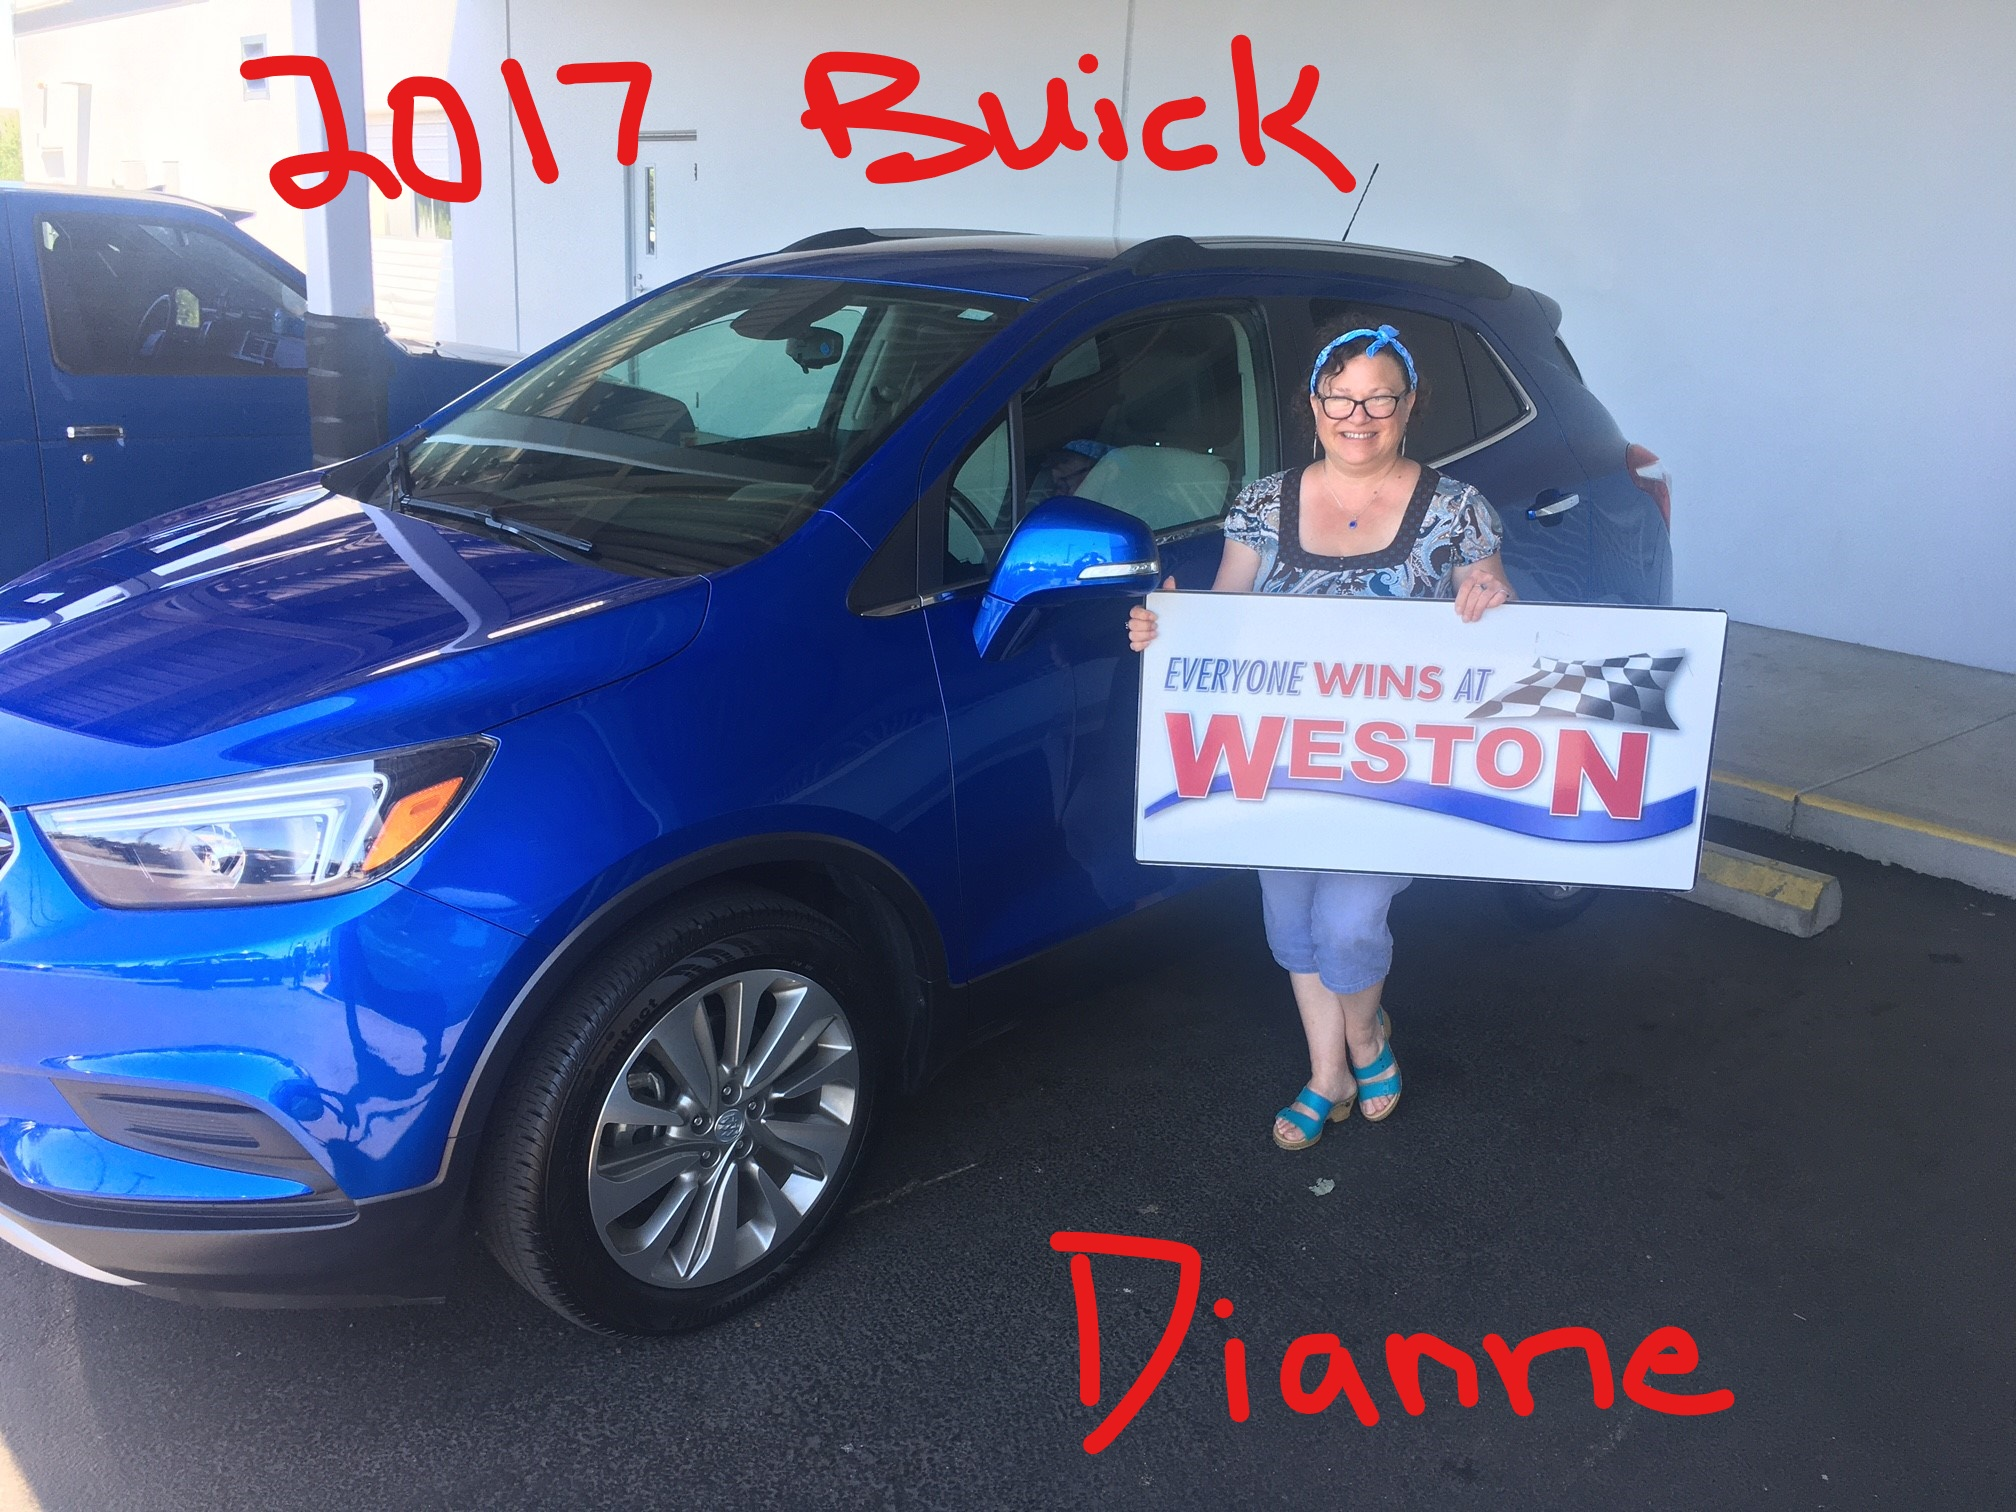 2017 Buick Dianne